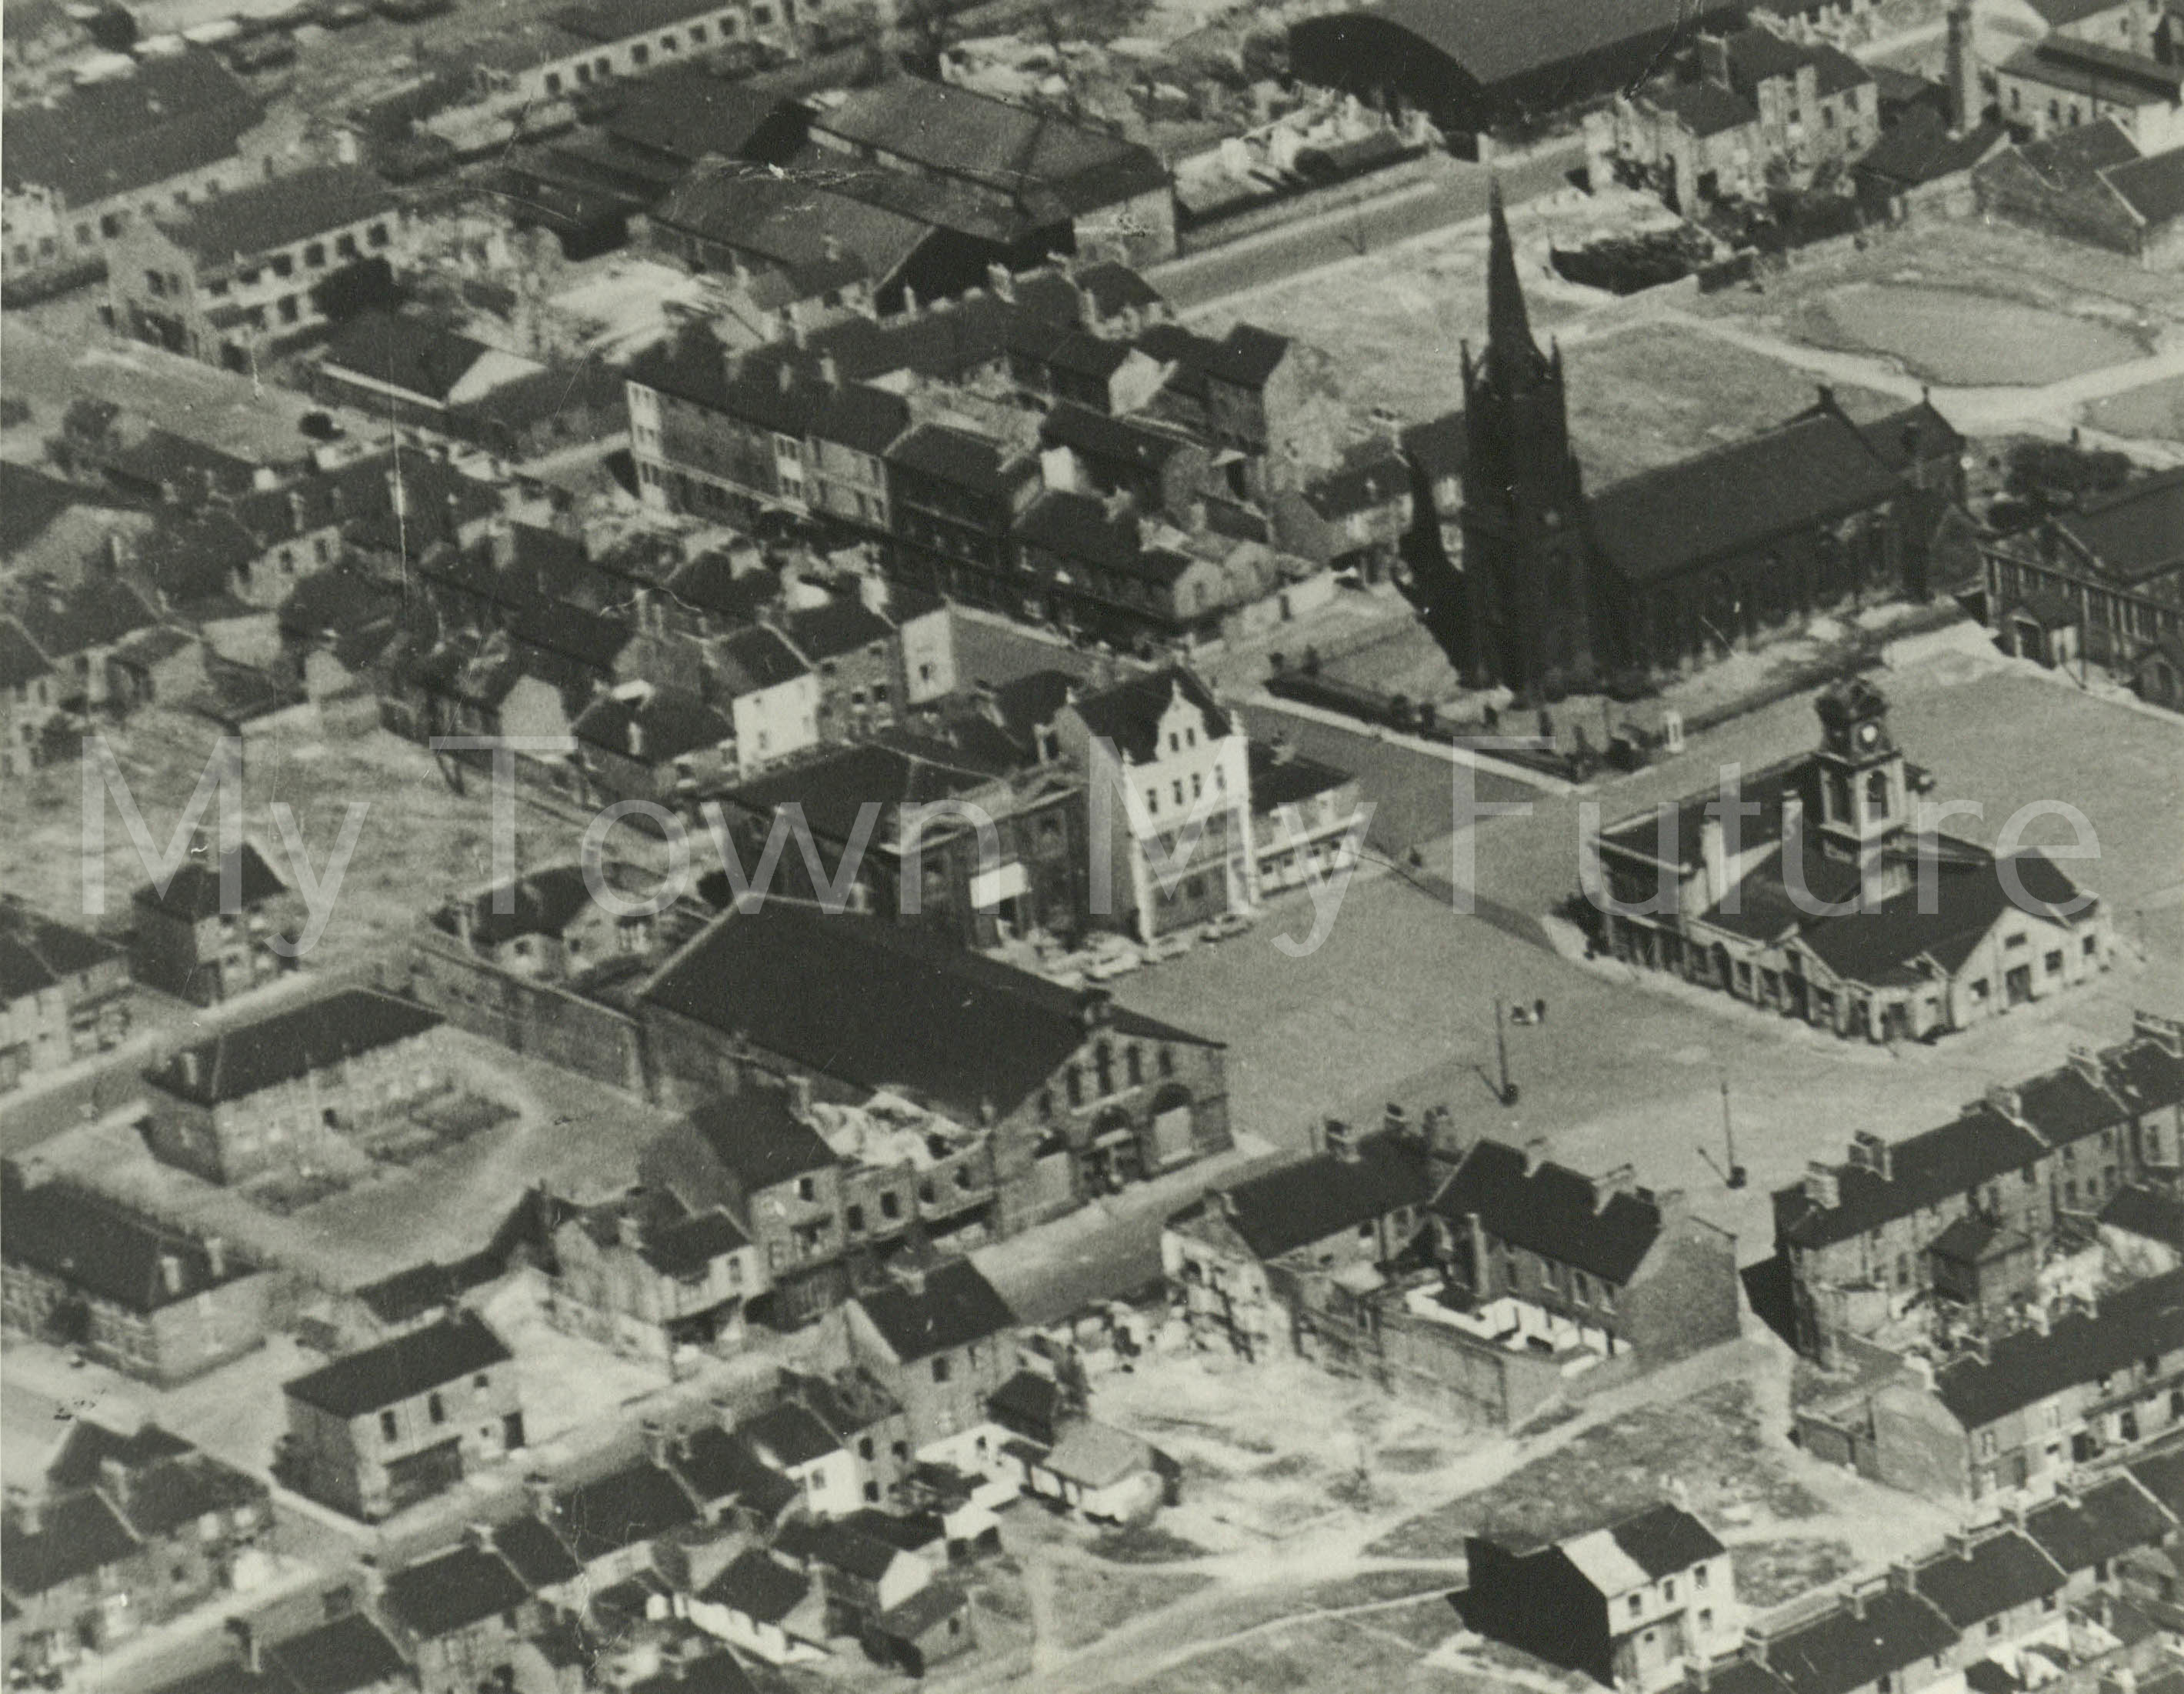 Middlesbrough St Hildas, 1959, Department of Planning - Cleveland County Council